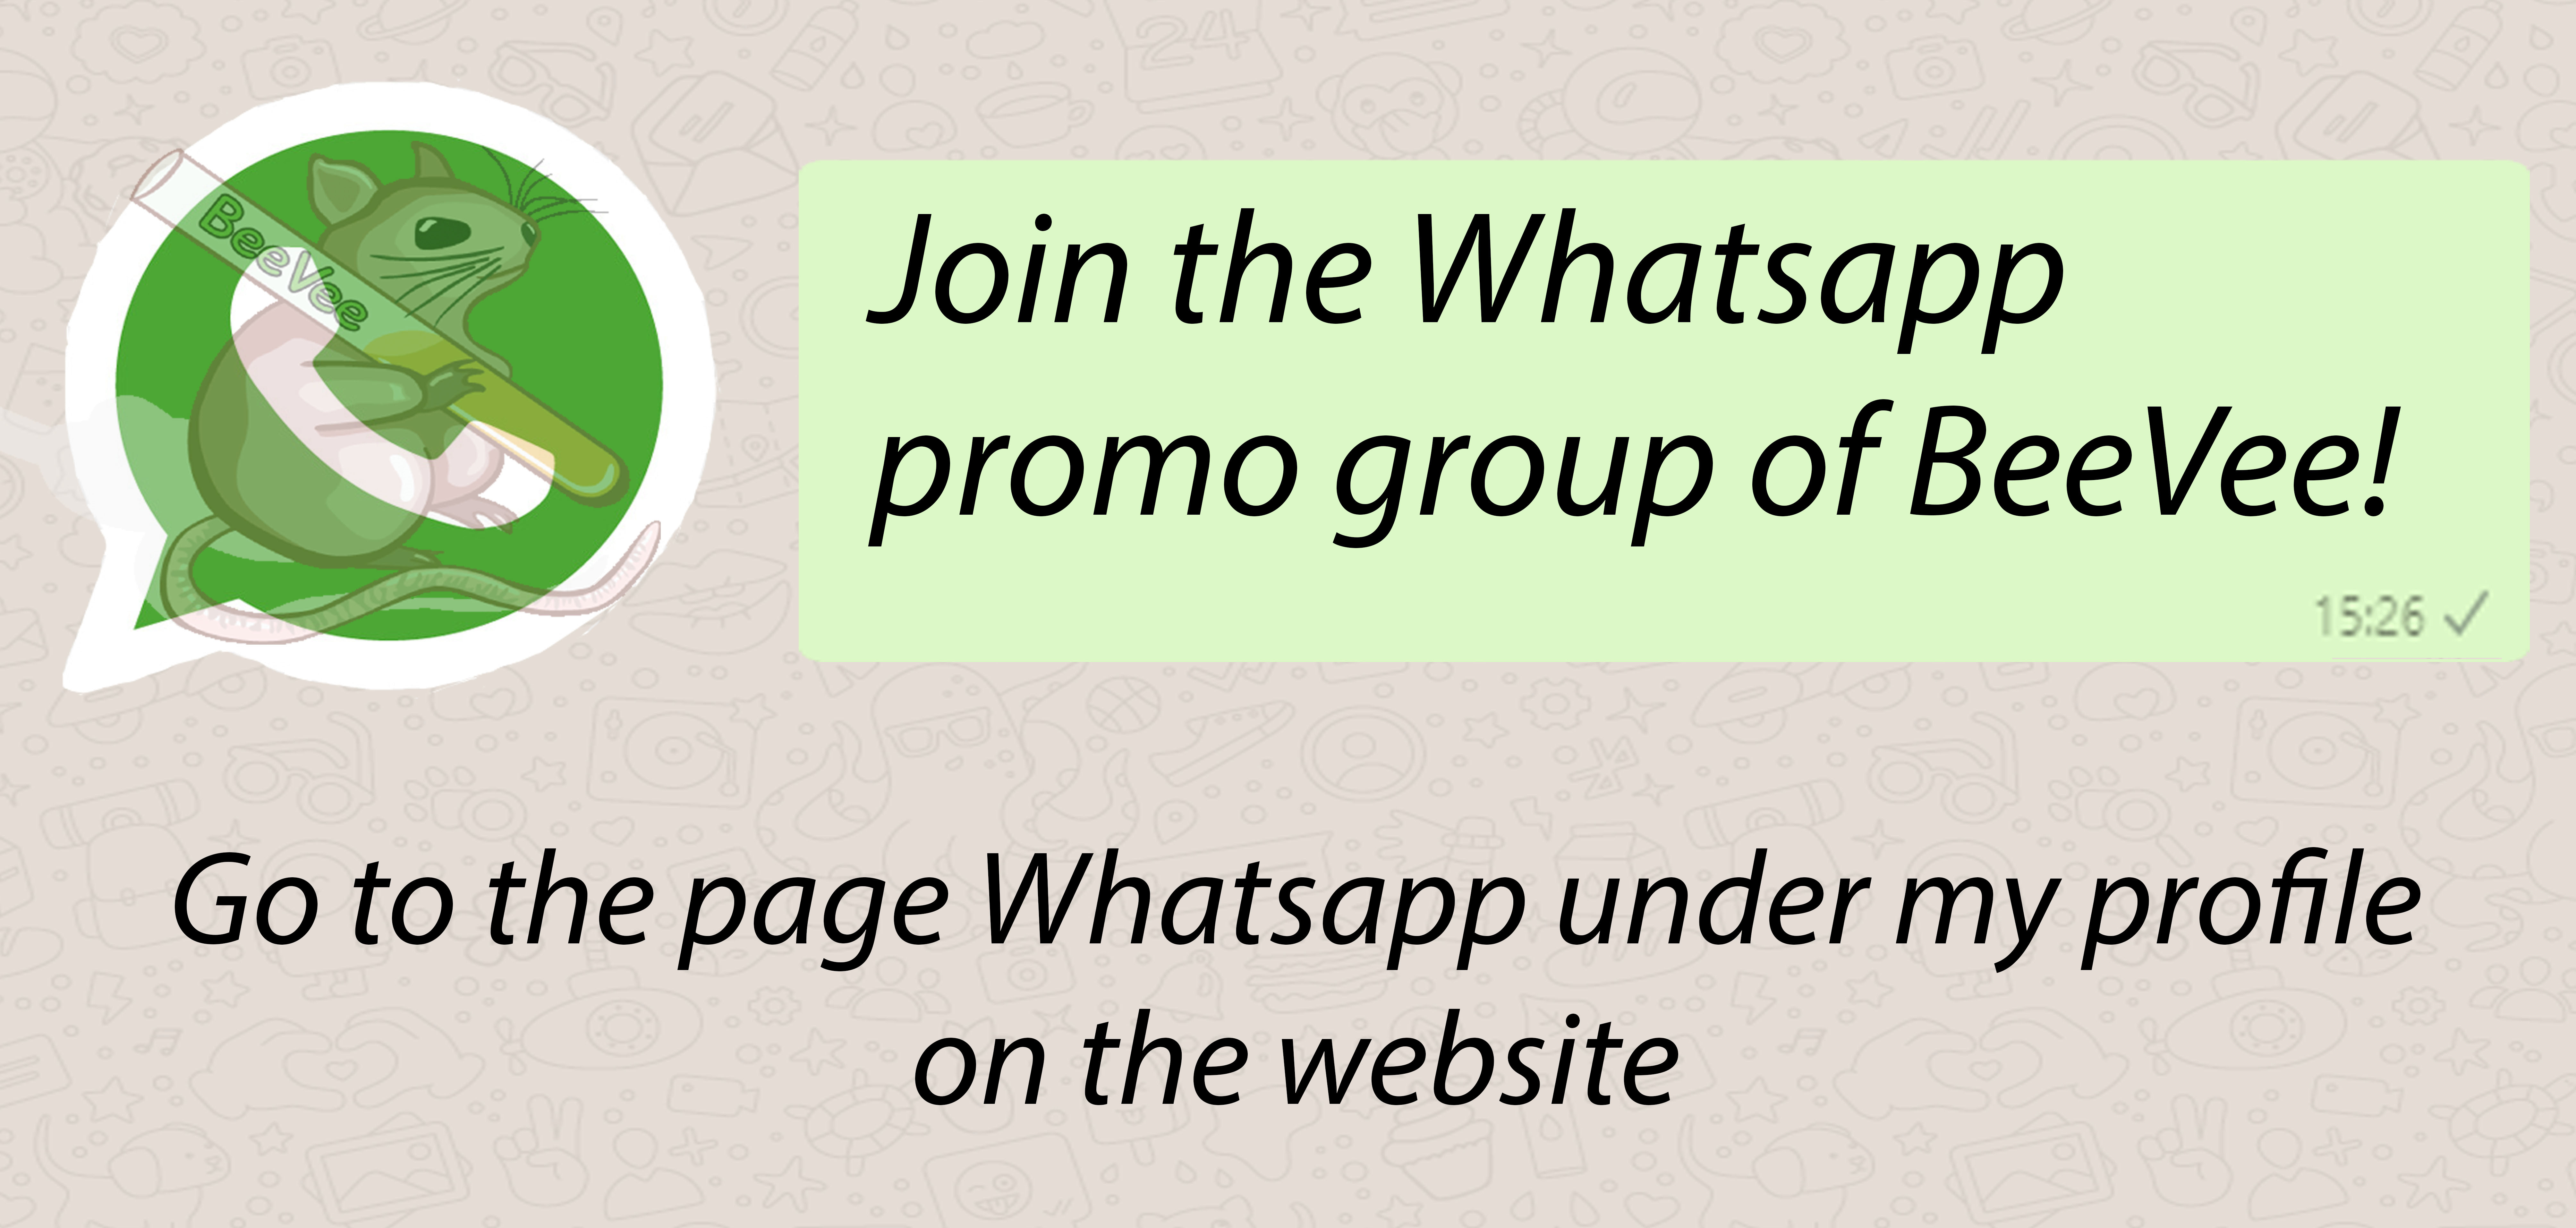 Whatsapp promo group